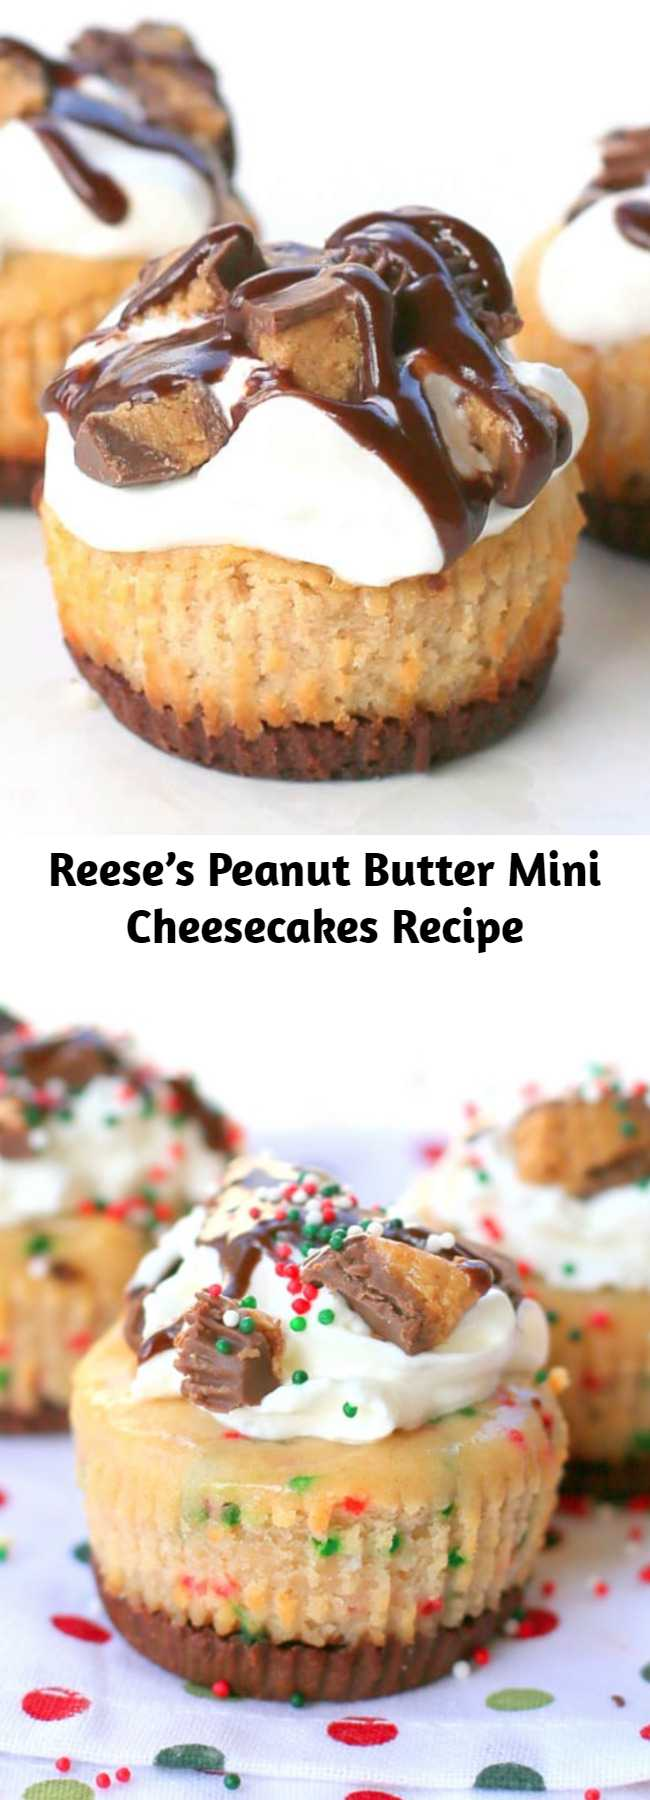 Reese's Peanut Butter Mini Cheesecakes Recipe - These Reese's Peanut Butter Mini Cheesecakes are so easy! The crust is made from a full size Reese's peanut butter cup.